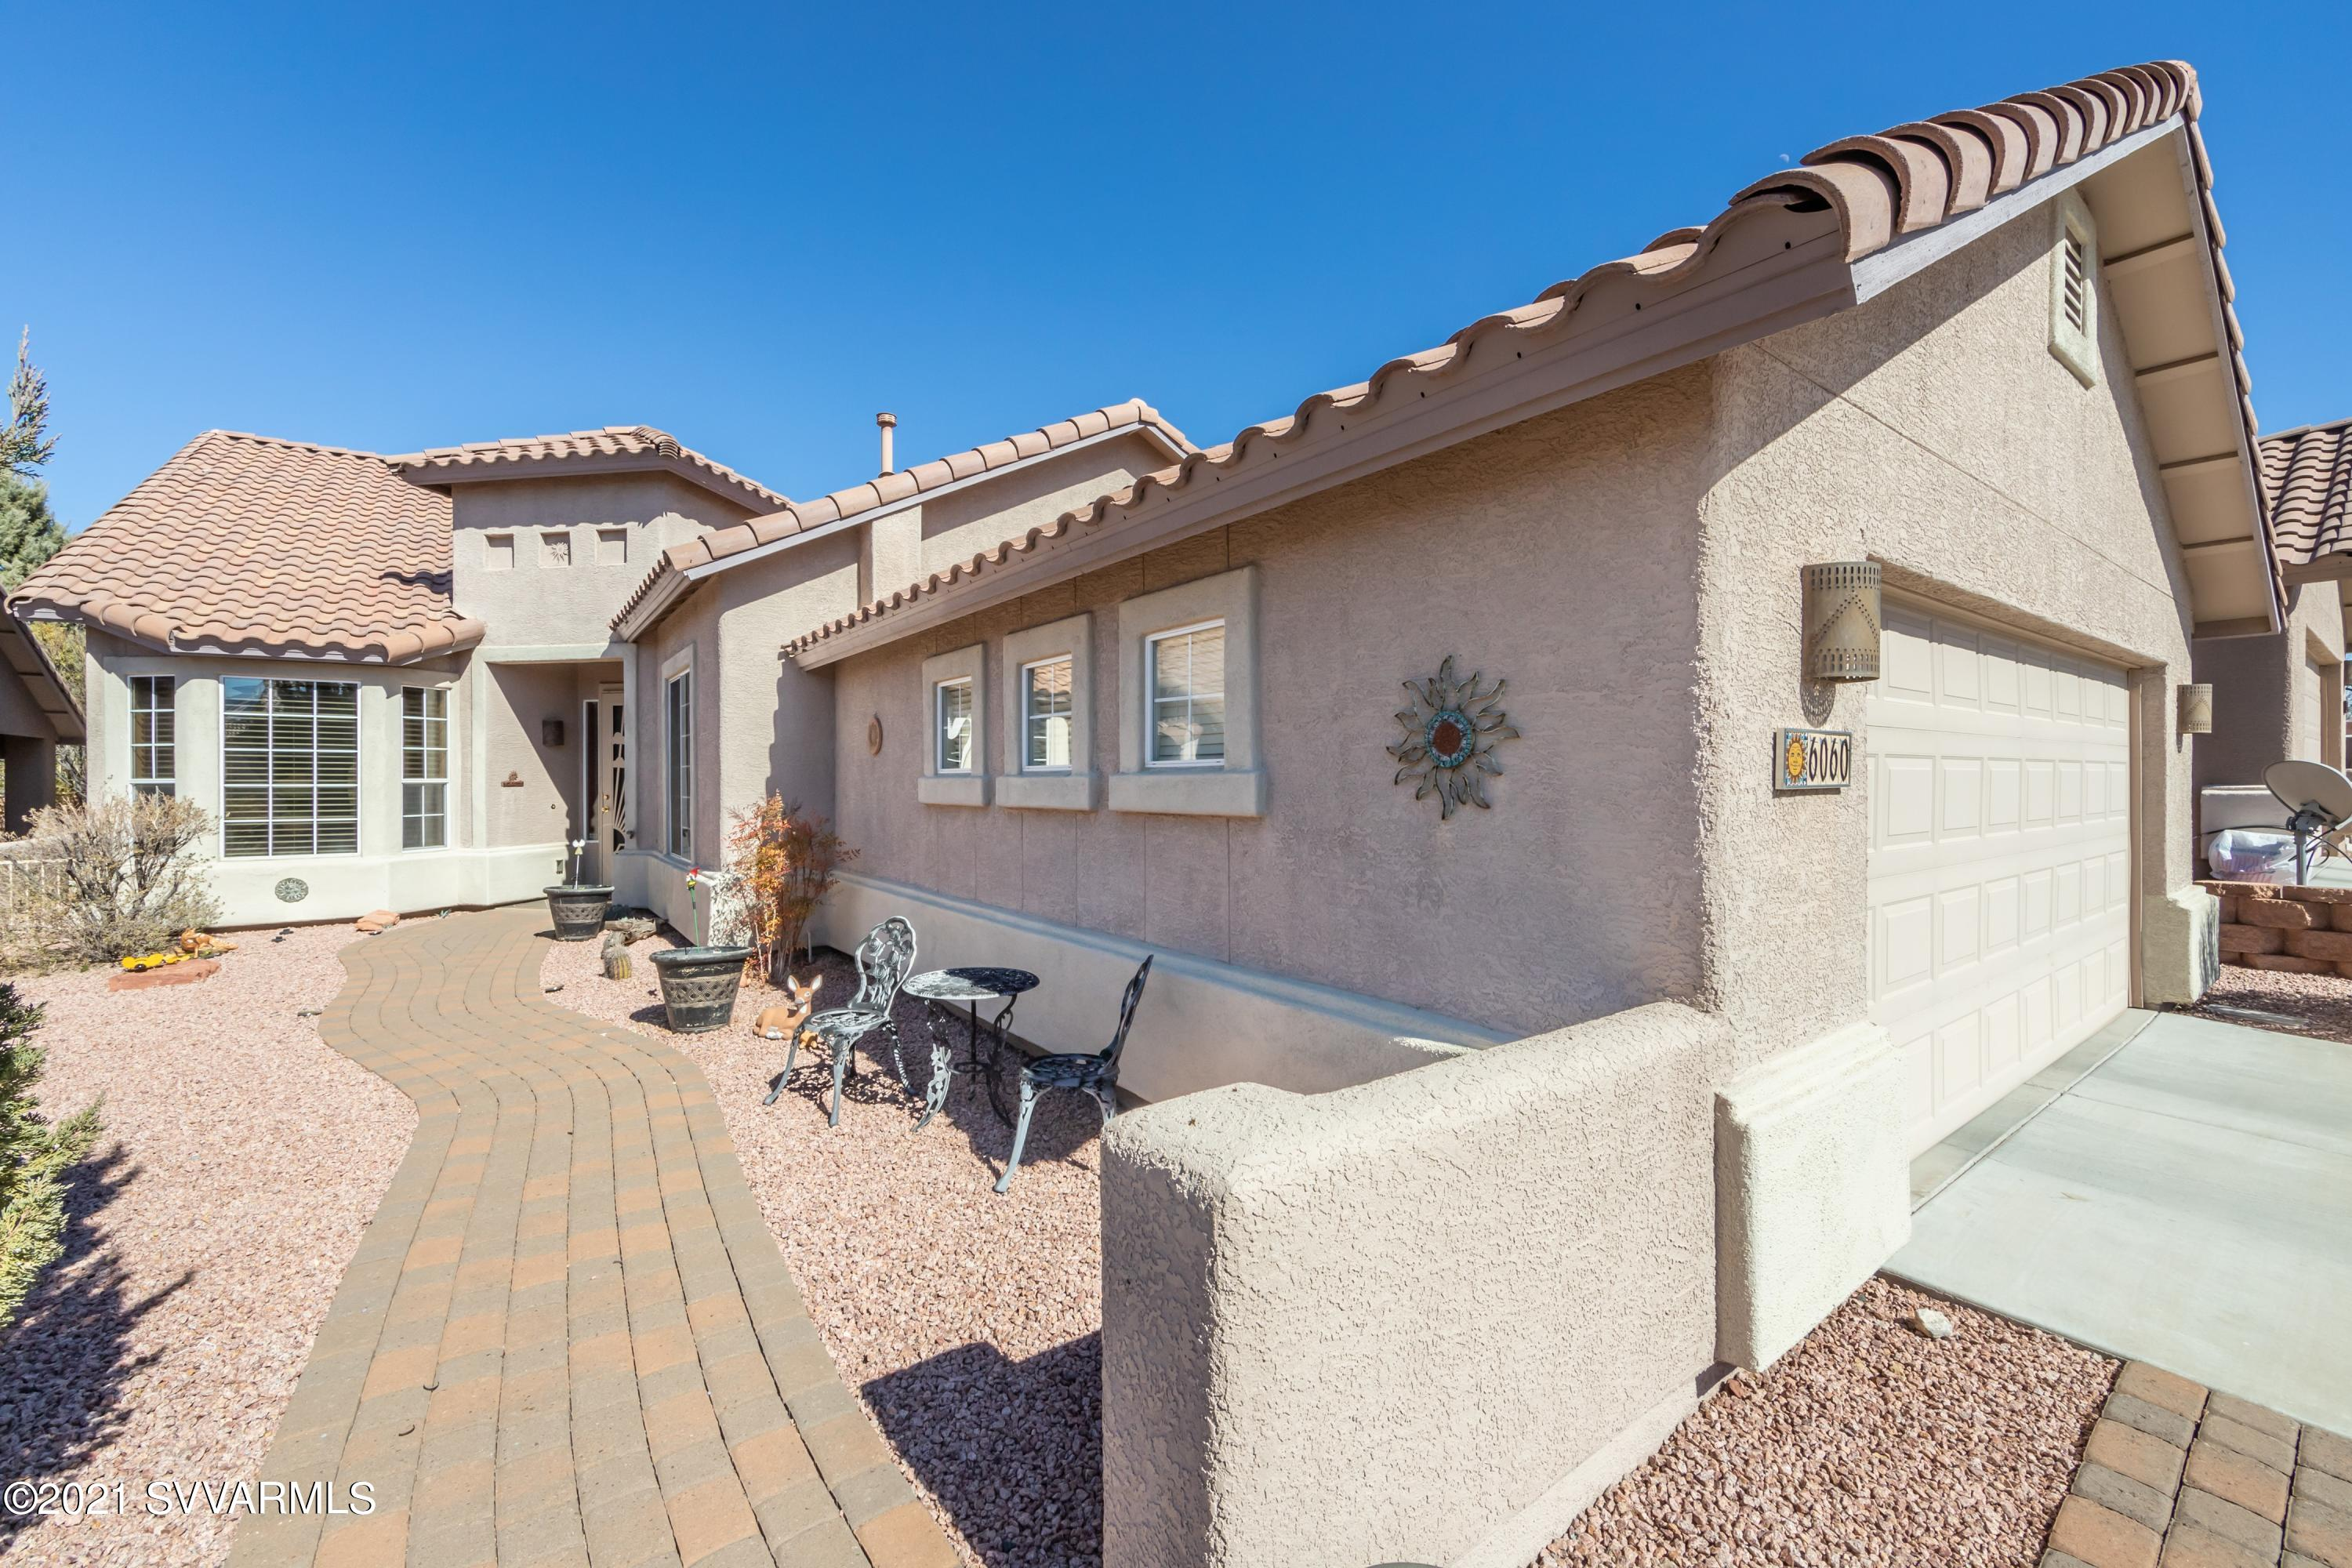 6060 E Pinion Vista Court Cornville, AZ 86325